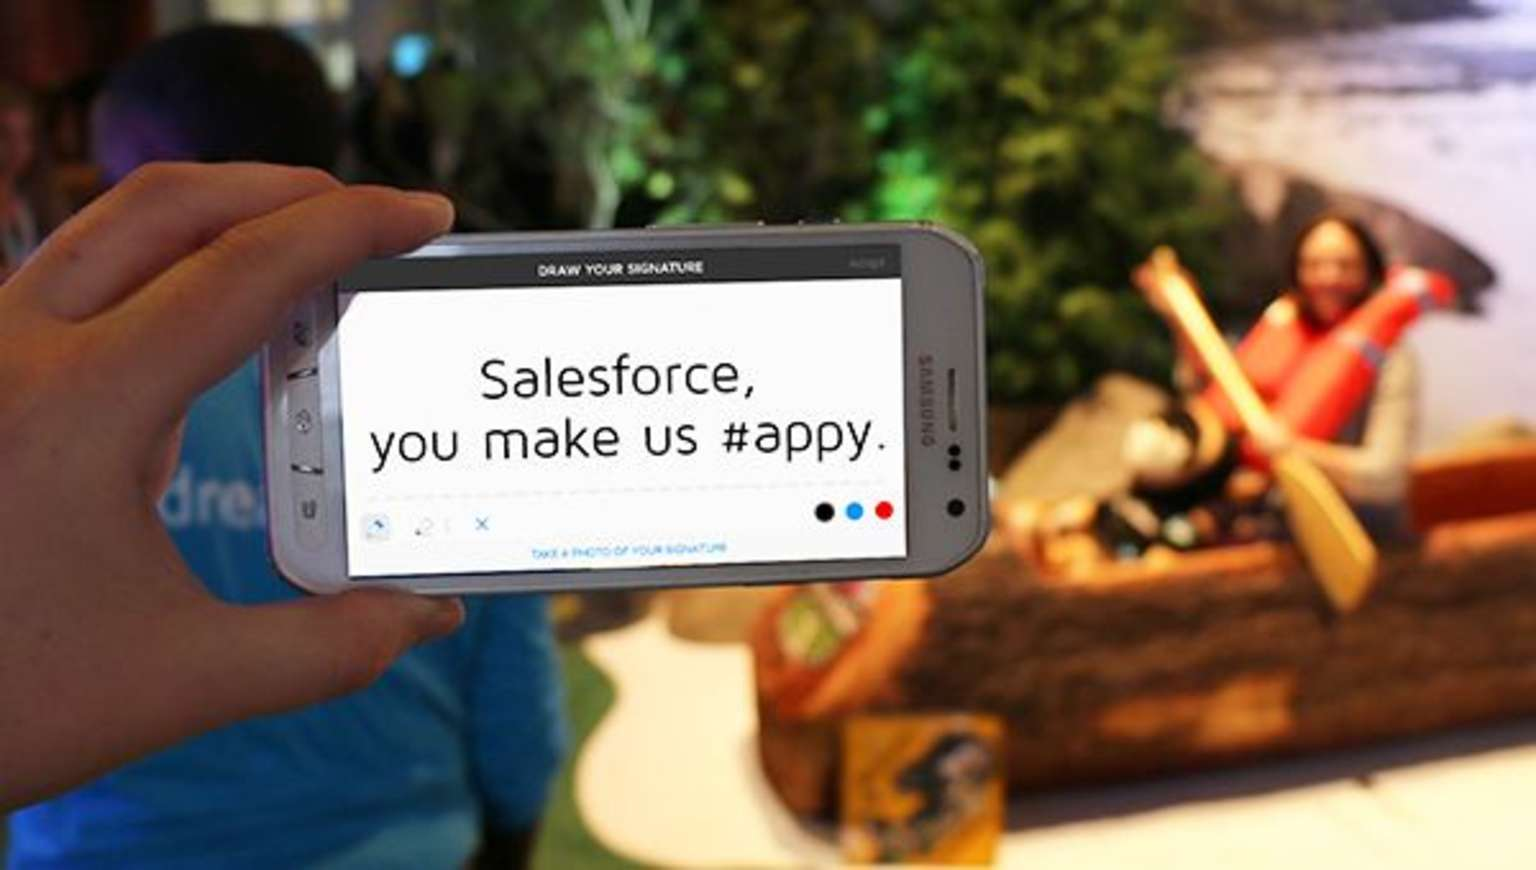 Read about DocuSign's award from Salesforce